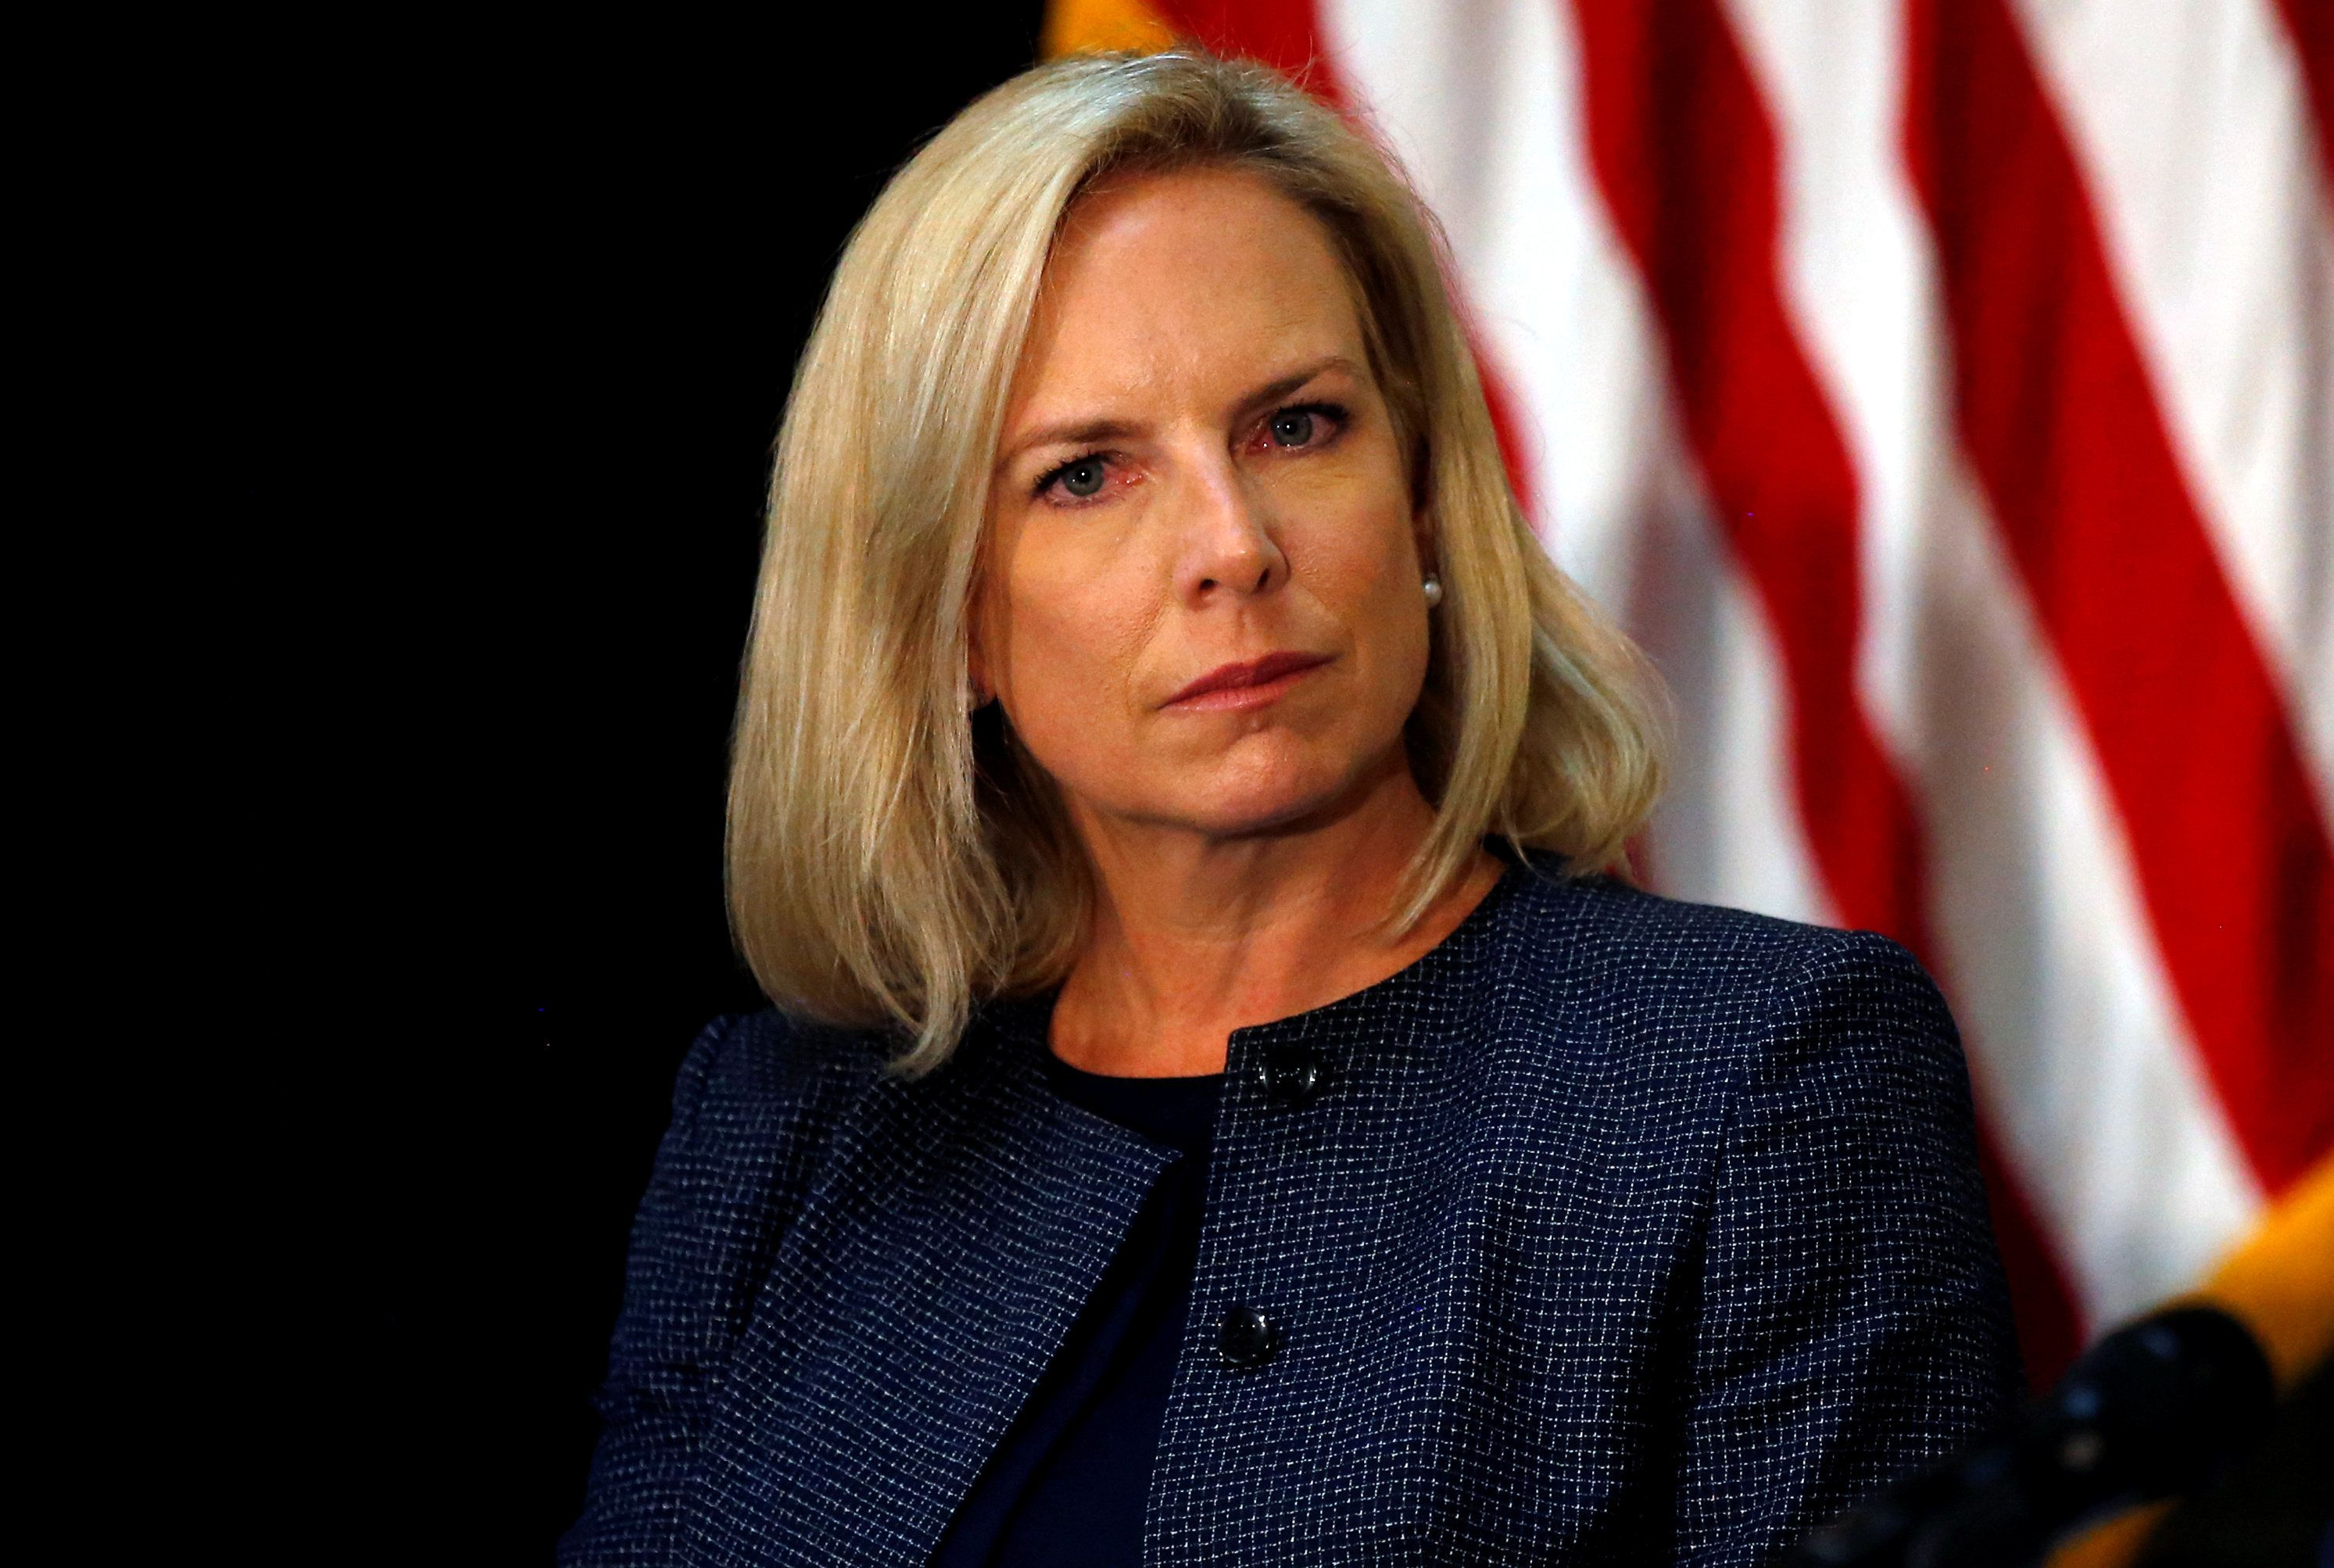 U.S. Homeland Security Secretary Kirstjen Nielsen takes part in a Federal Commission on School Safety meeting at the White House in Washington, D.C., U.S., August 16, 2018. REUTERS/Leah Millis